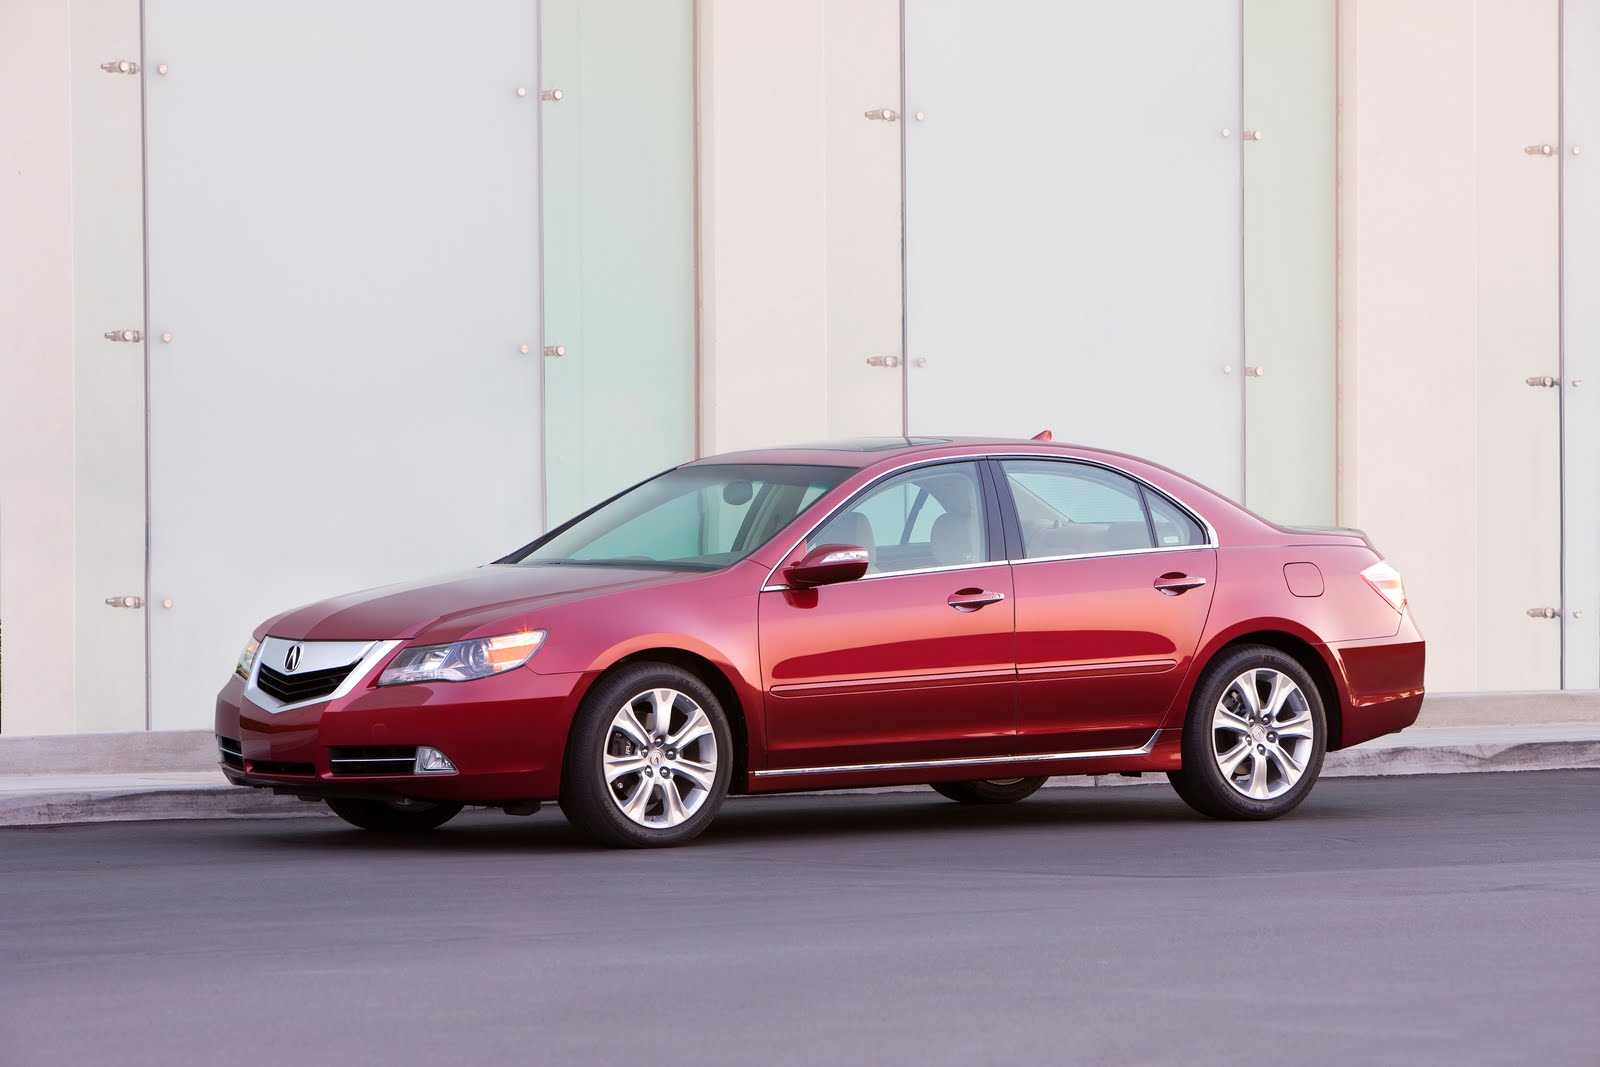 2010 Acura RL Car Gallery